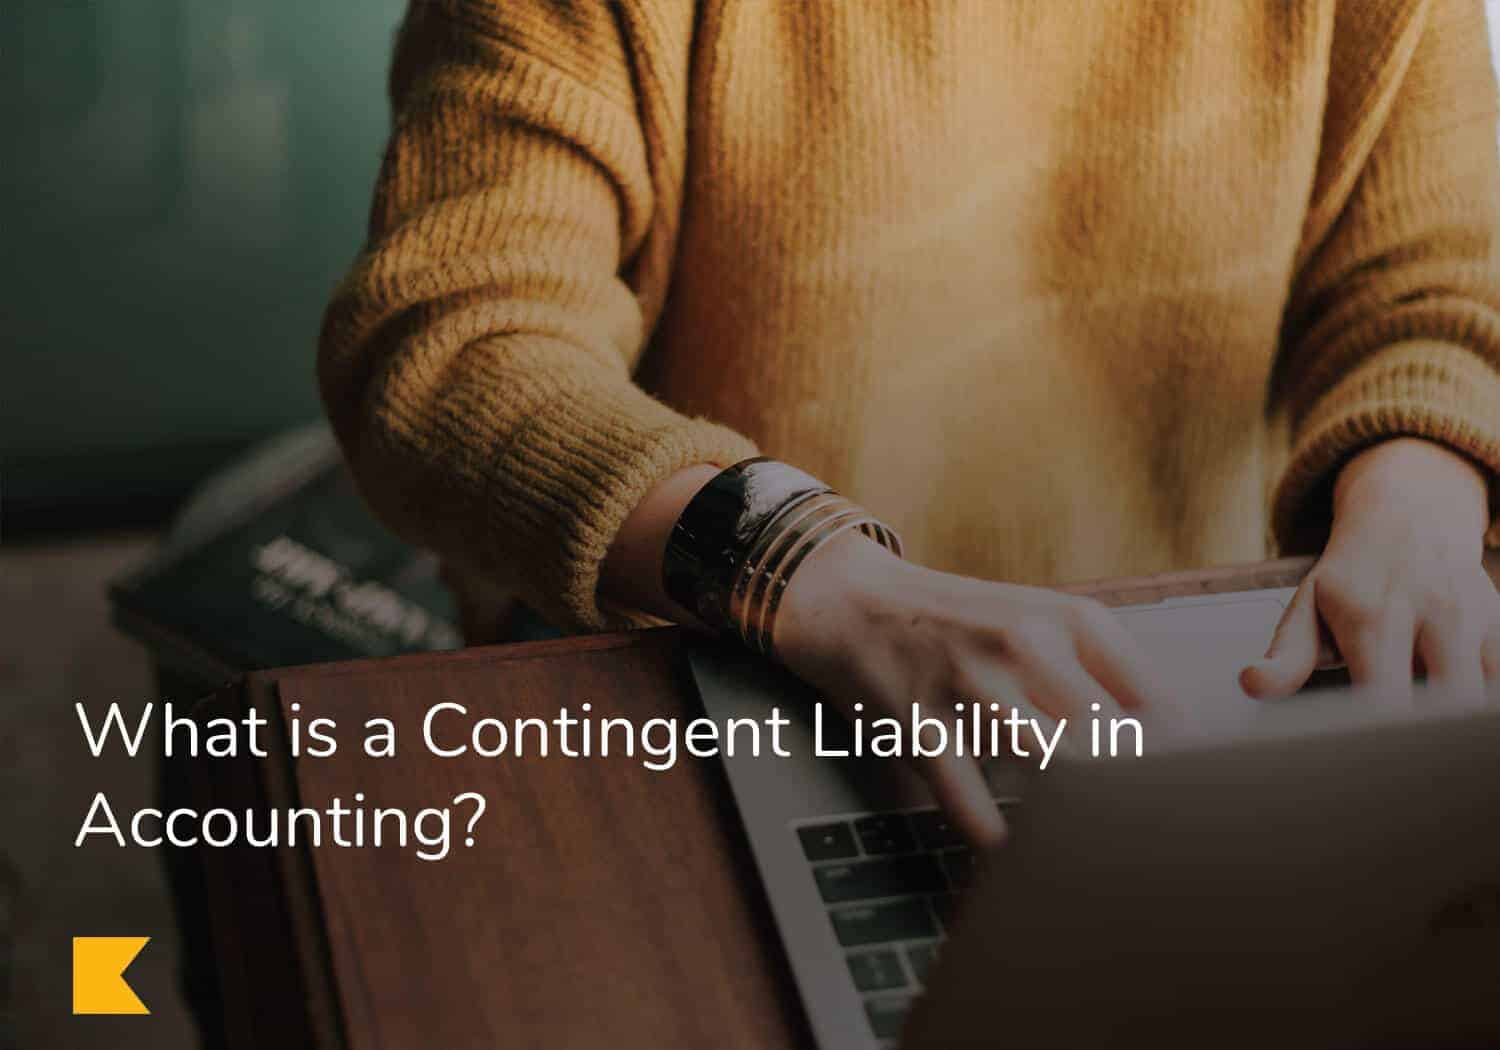 What is a Contingent Liability in Accounting?